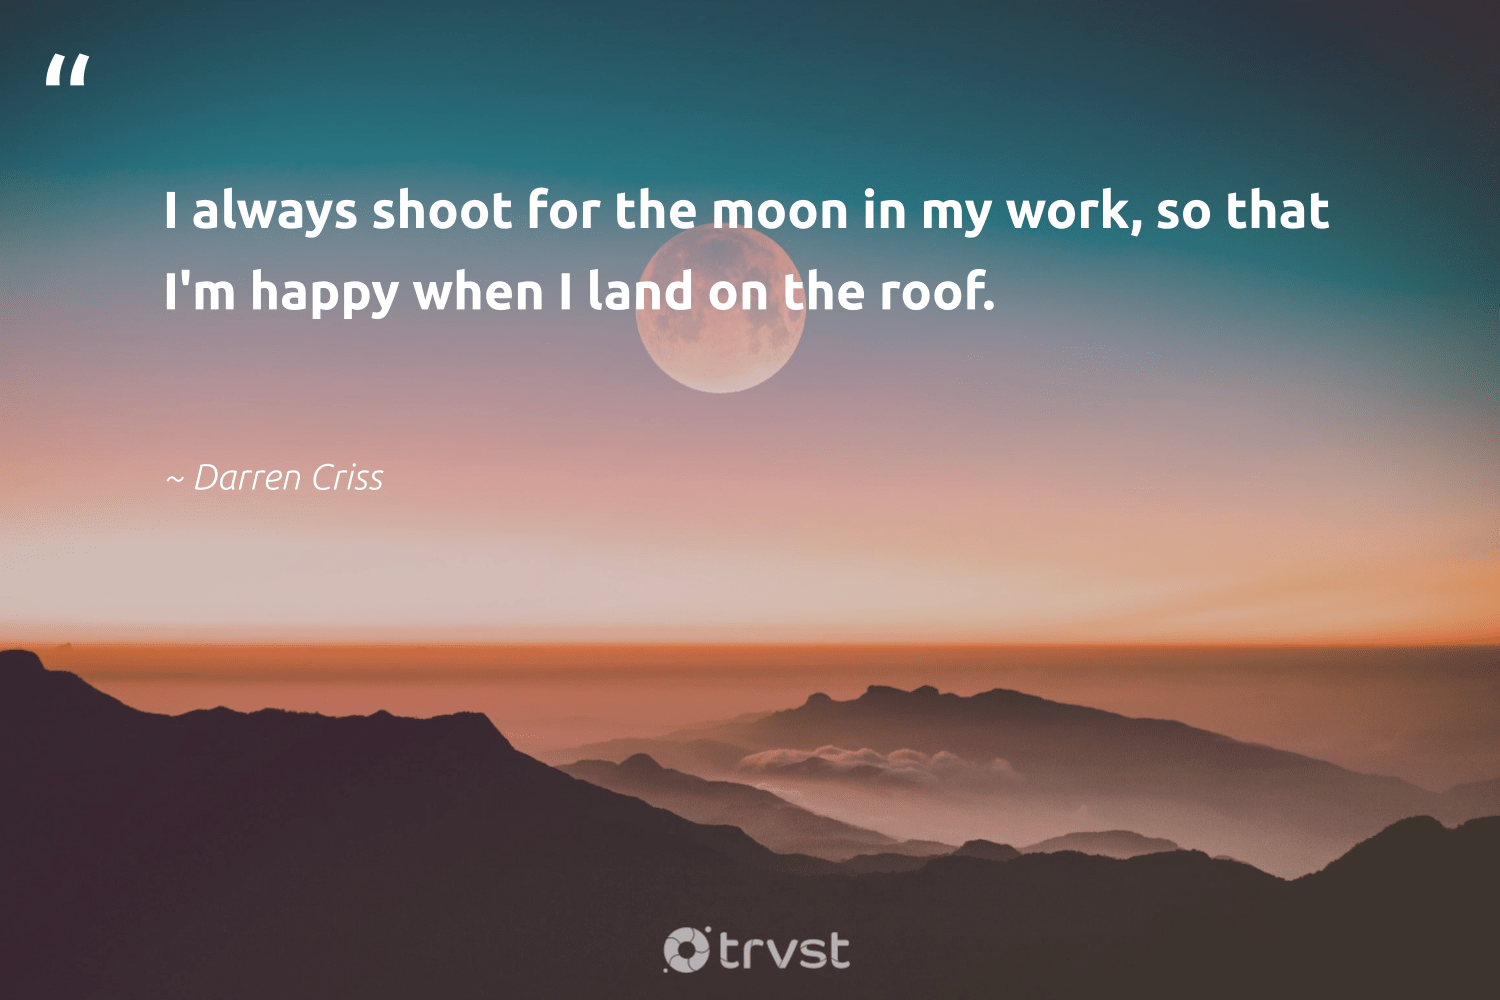 """""""I always shoot for the moon in my work, so that I'm happy when I land on the roof.""""  - Darren Criss #trvst #quotes #happy #begreat #changetheworld #softskills #bethechange #futureofwork #socialimpact #nevergiveup #planetearthfirst #dosomething"""